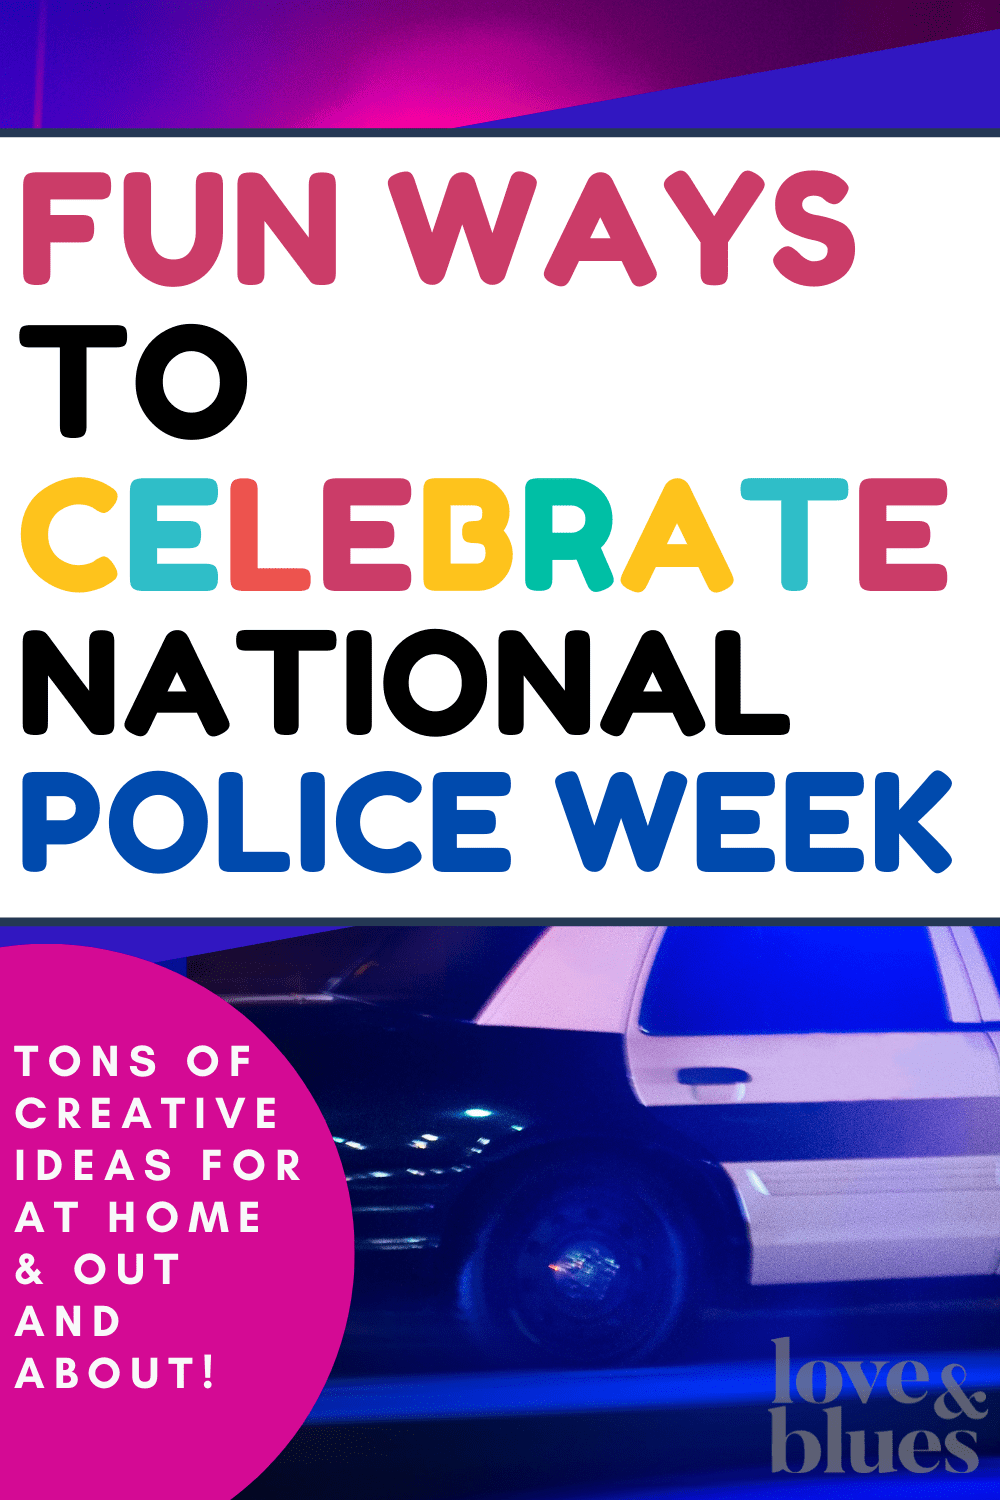 Such fun ideas to celebrate national police week!!